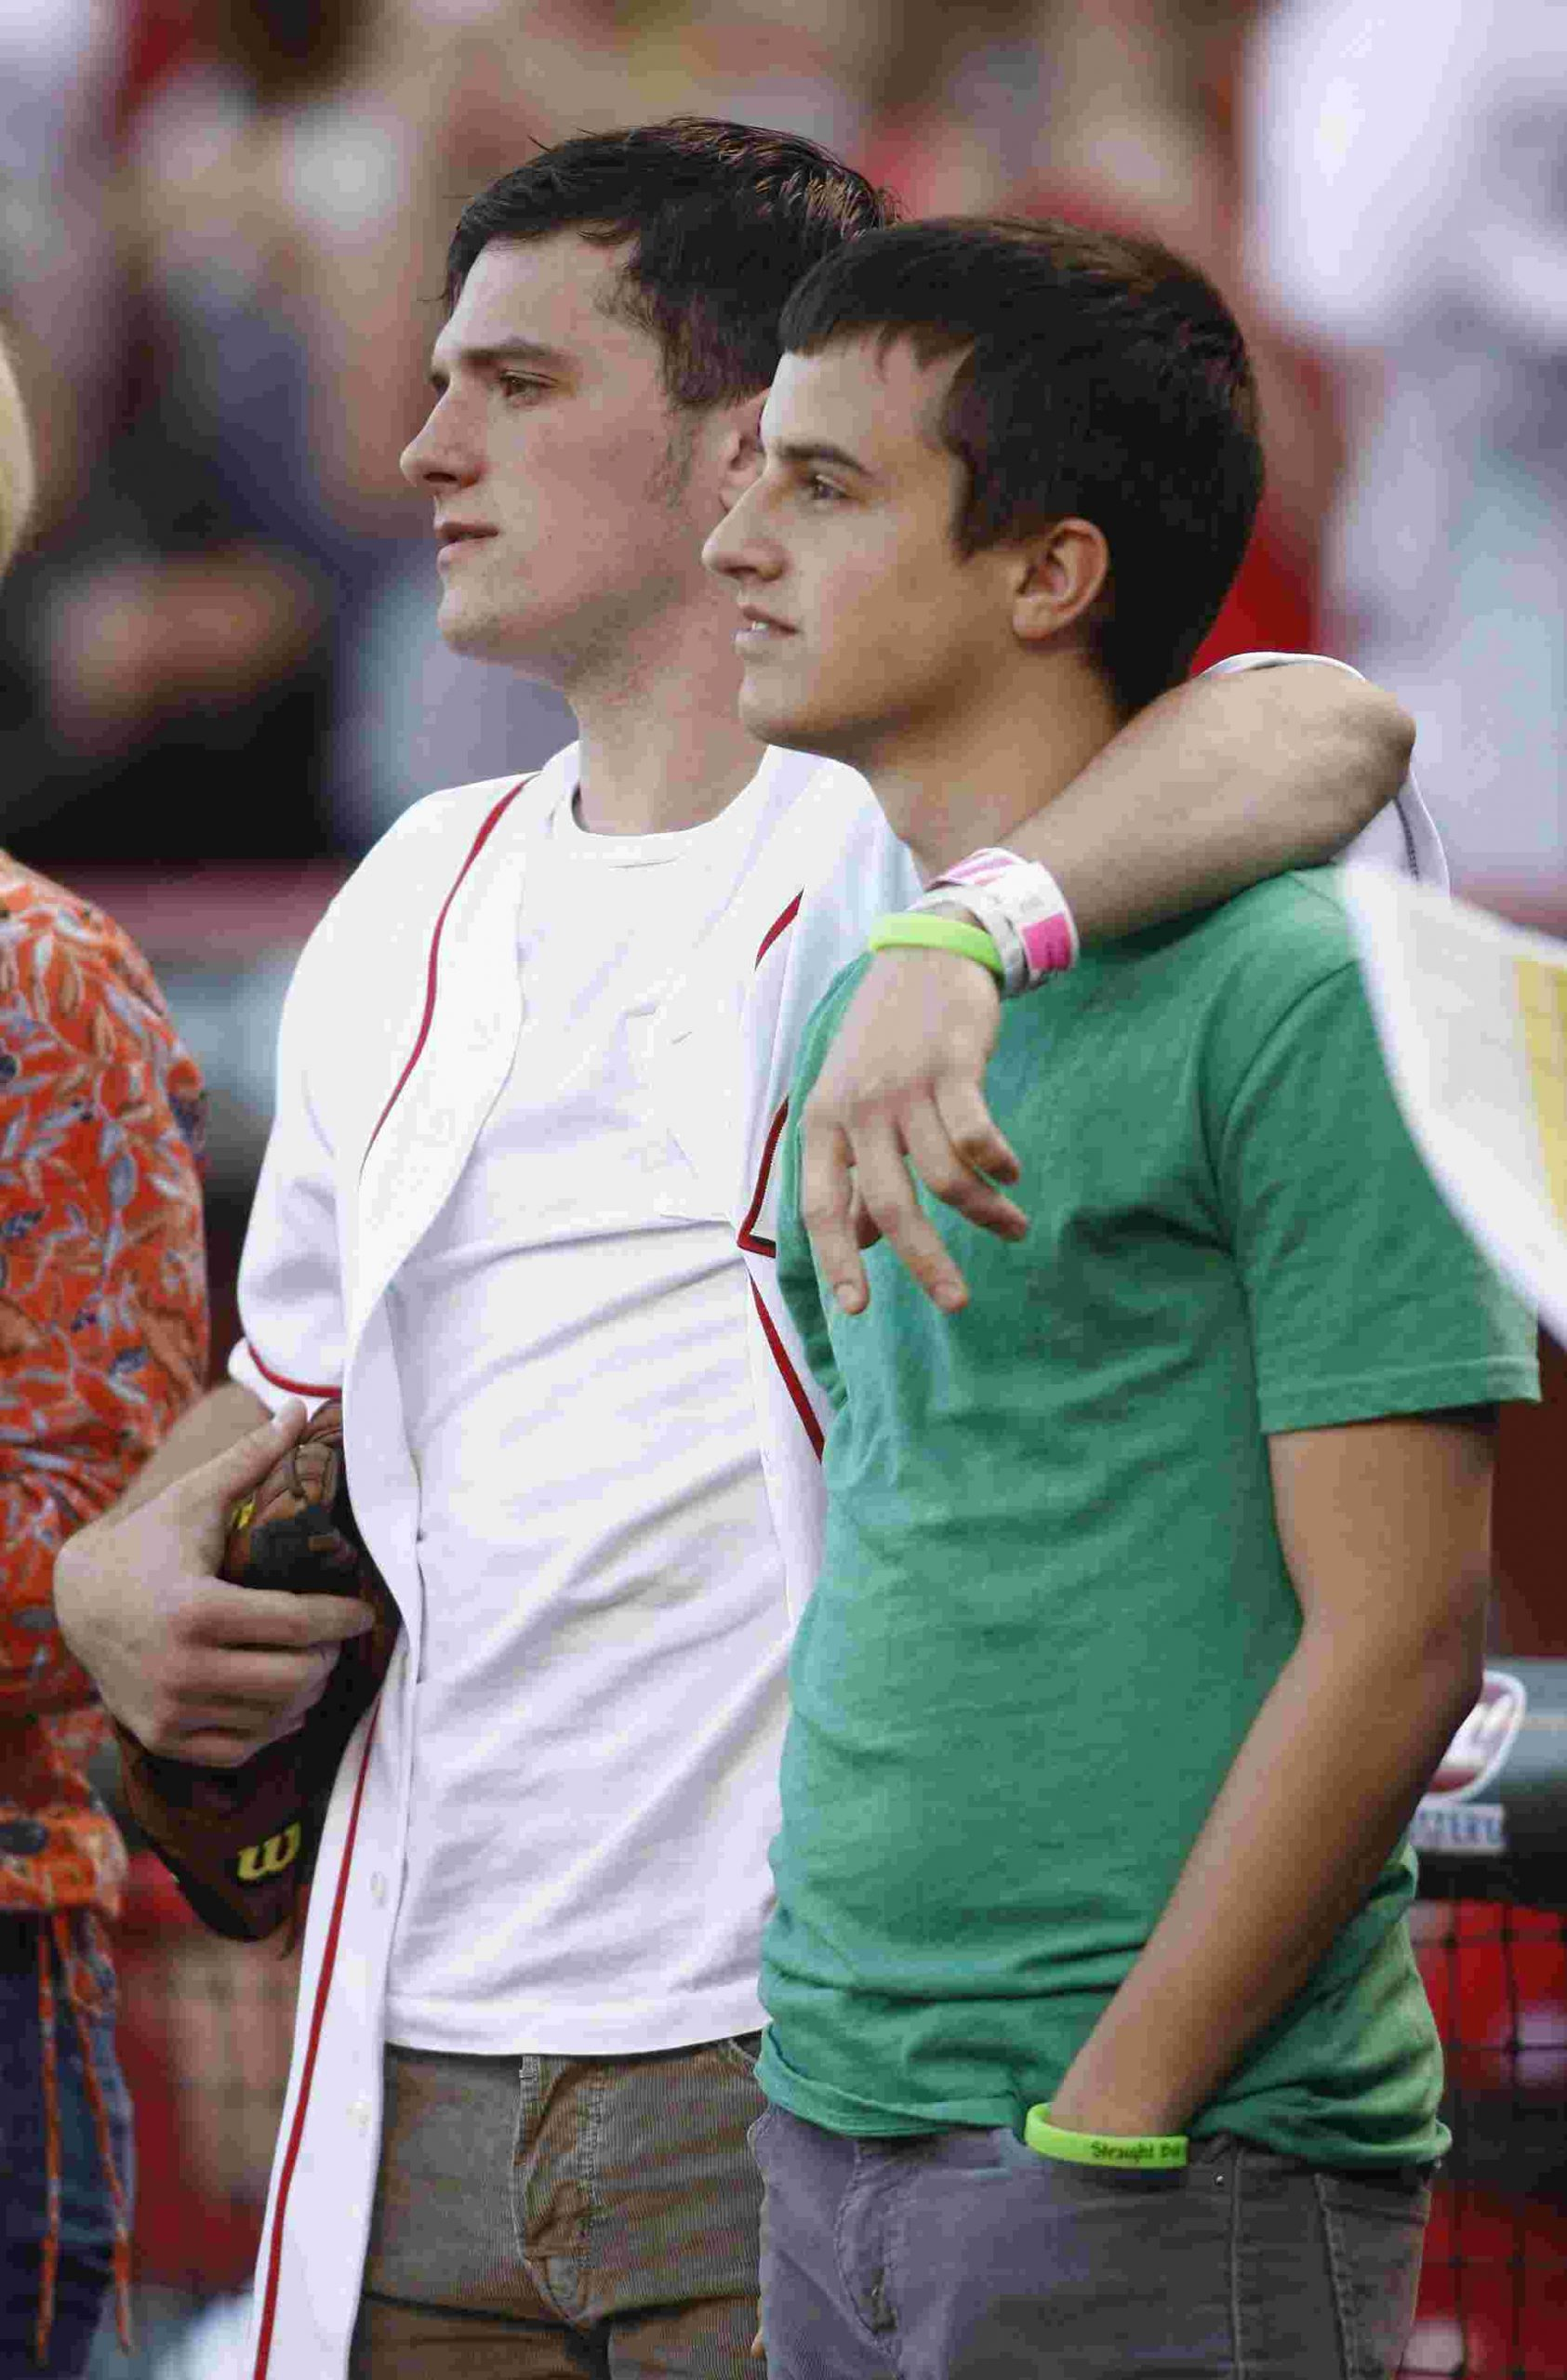 Josh Hutcherson with his younger brother